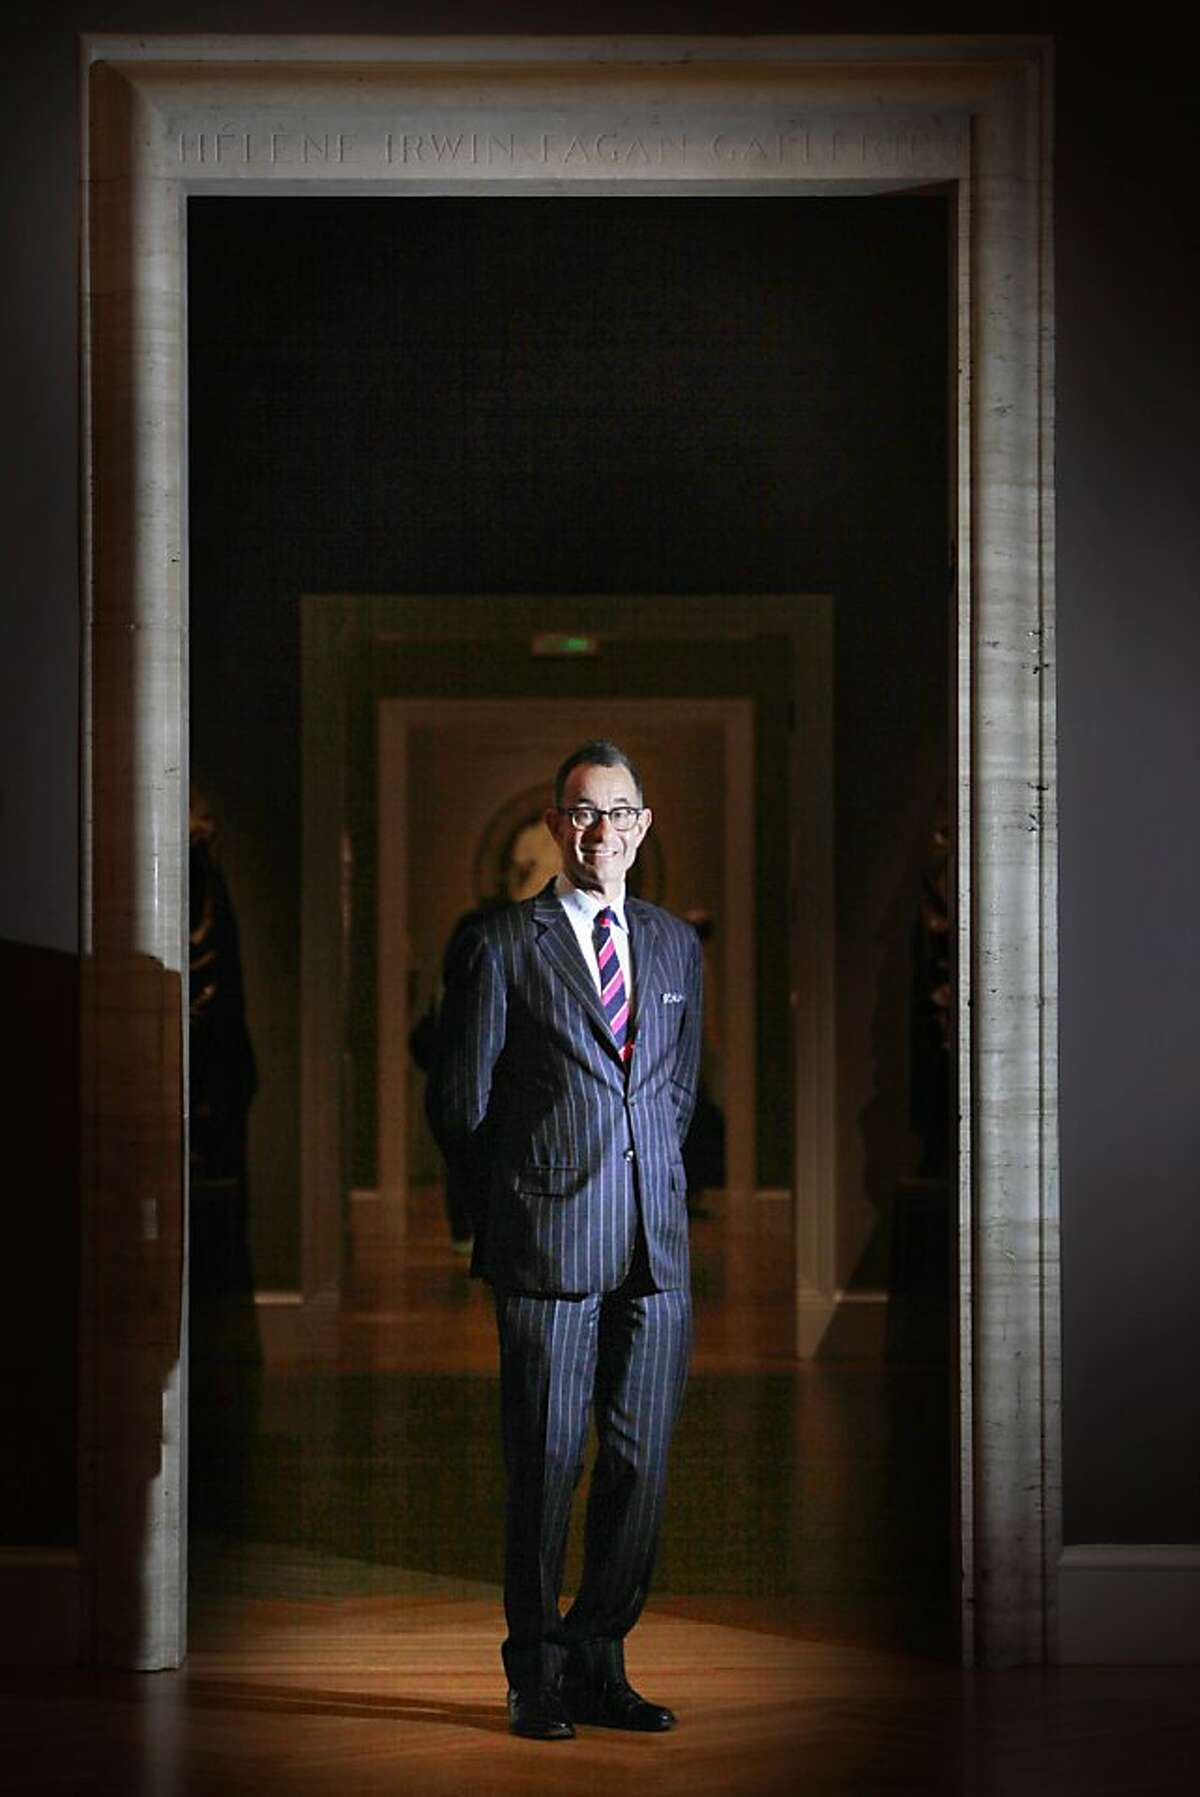 David Bailey stands in a gallery at the Legion of Honor on Wednesday, June 19, 2013 in San Francisco, Calif.